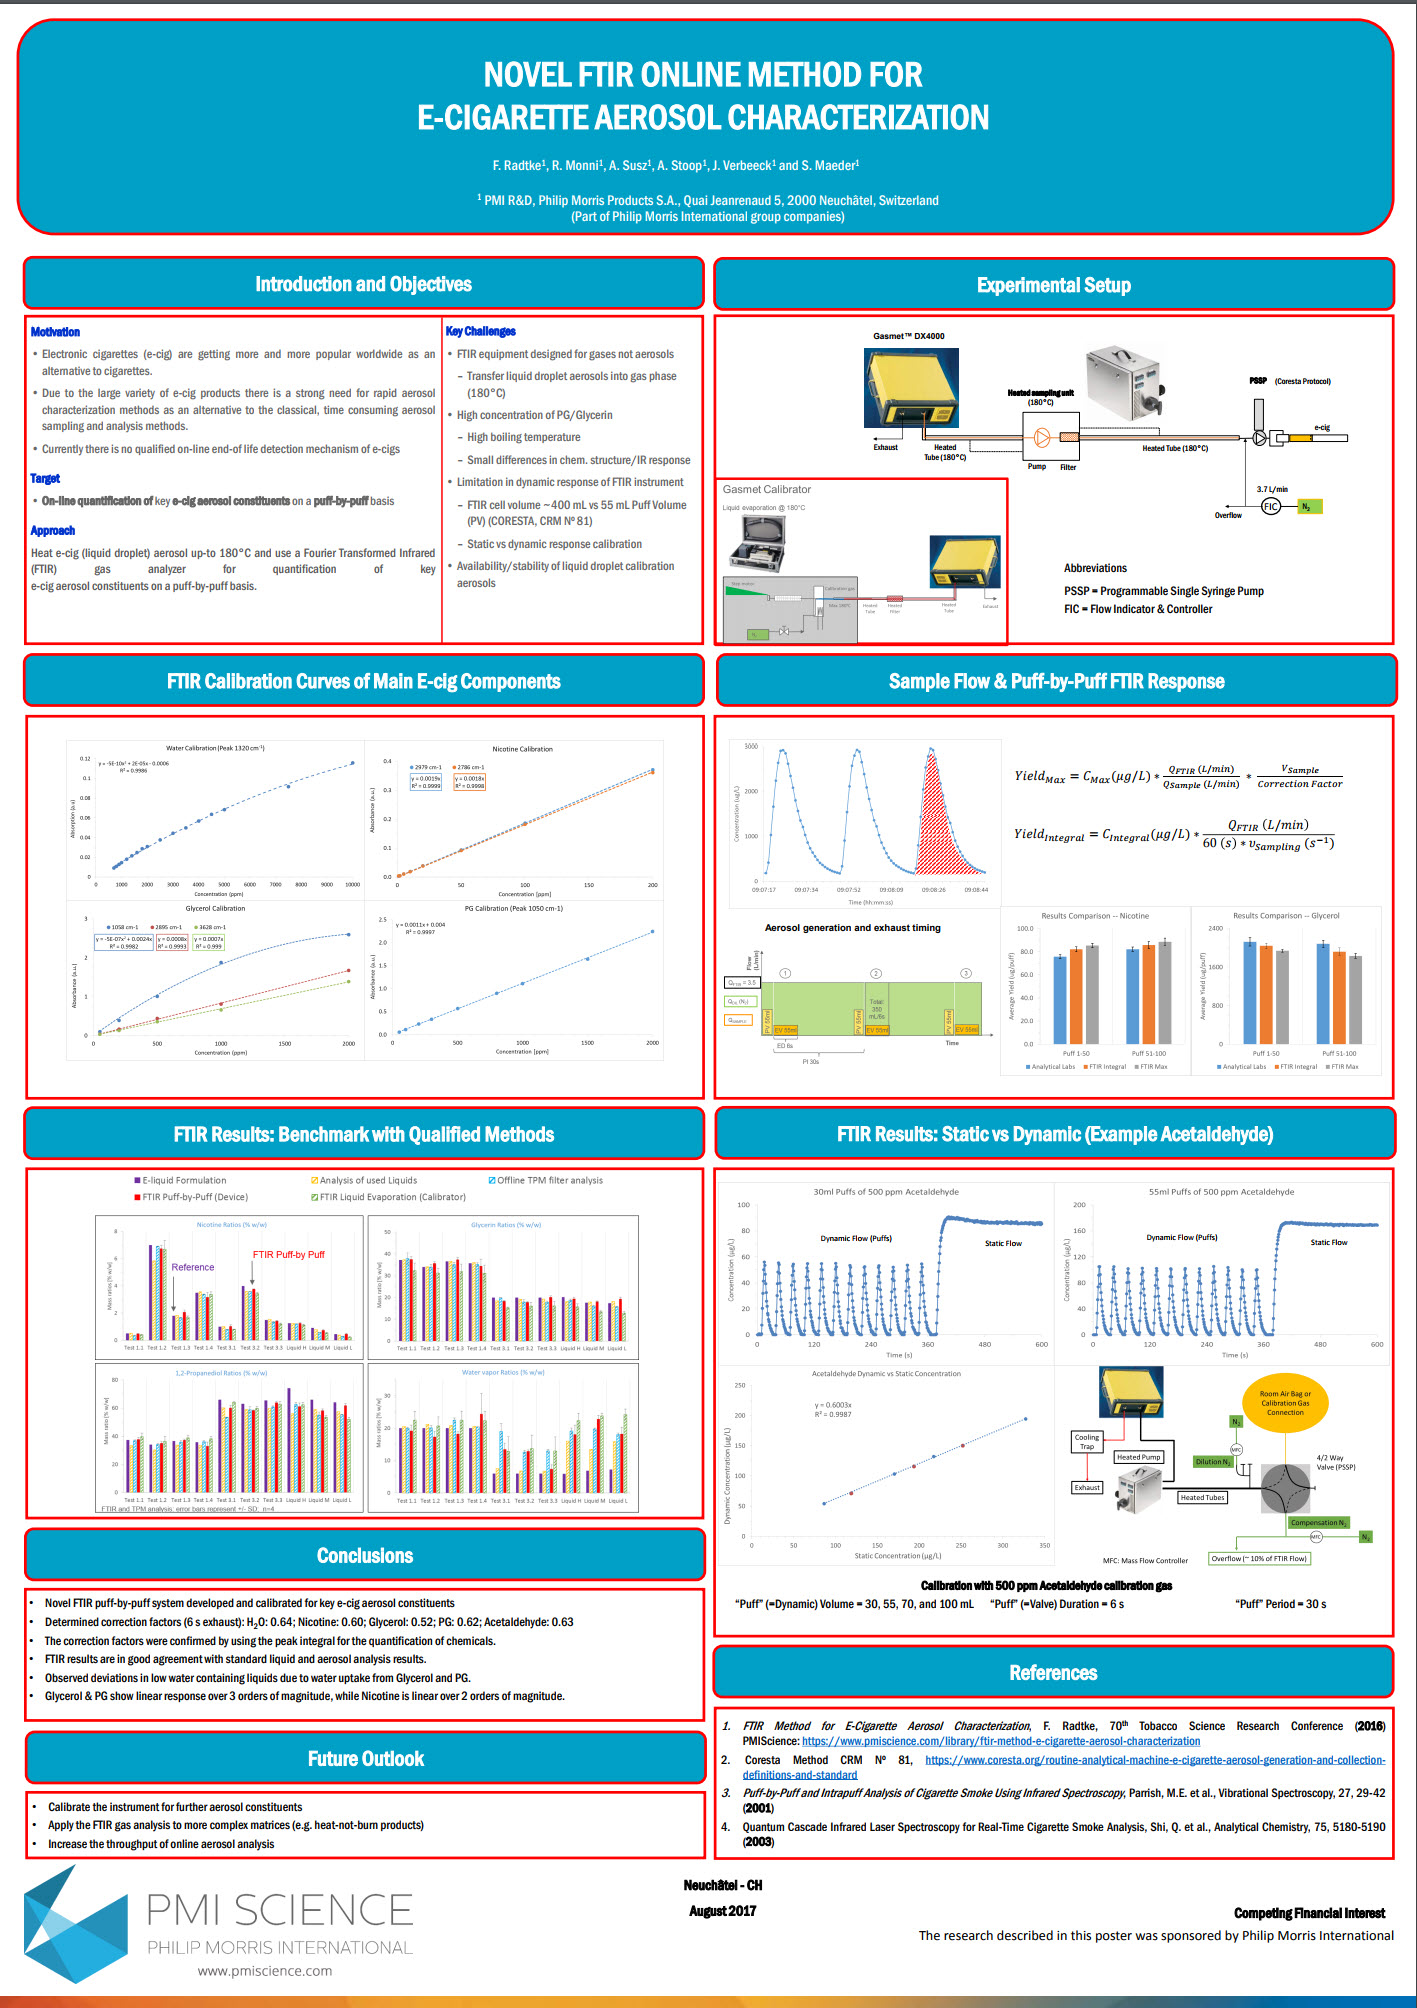 EAC 2017 Monni Novel FTIR online method for e-cigarette aerosol characterization Screenshot